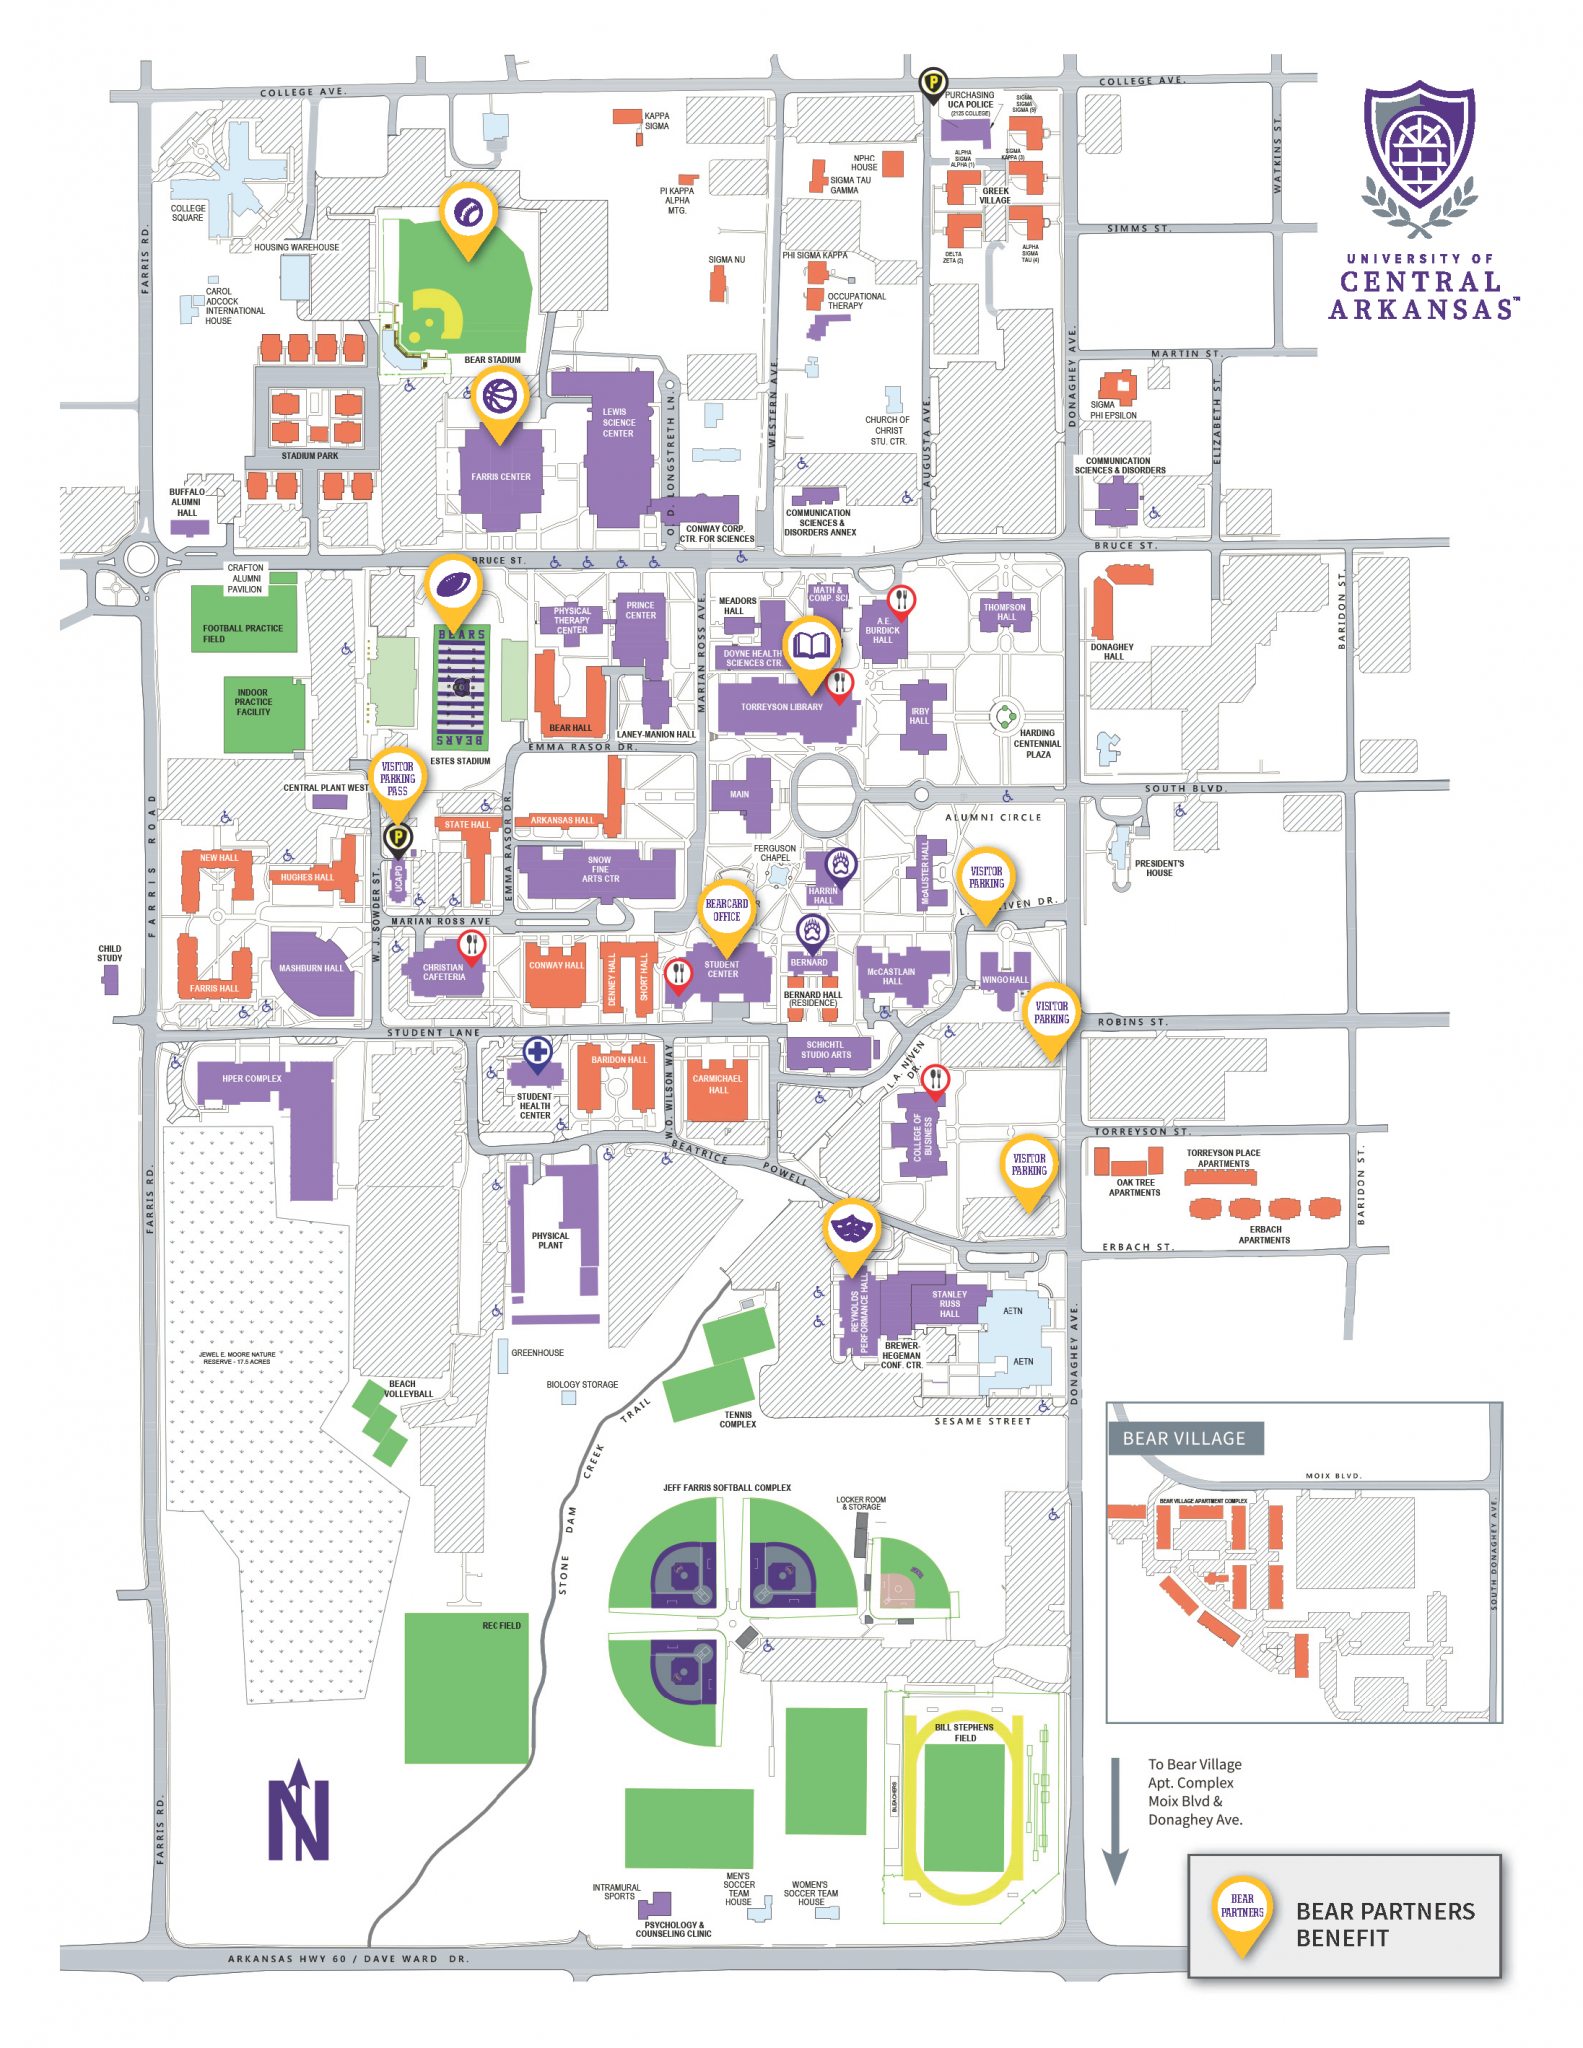 University Of Central Arkansas Campus Map.Campus Map Bear Partners